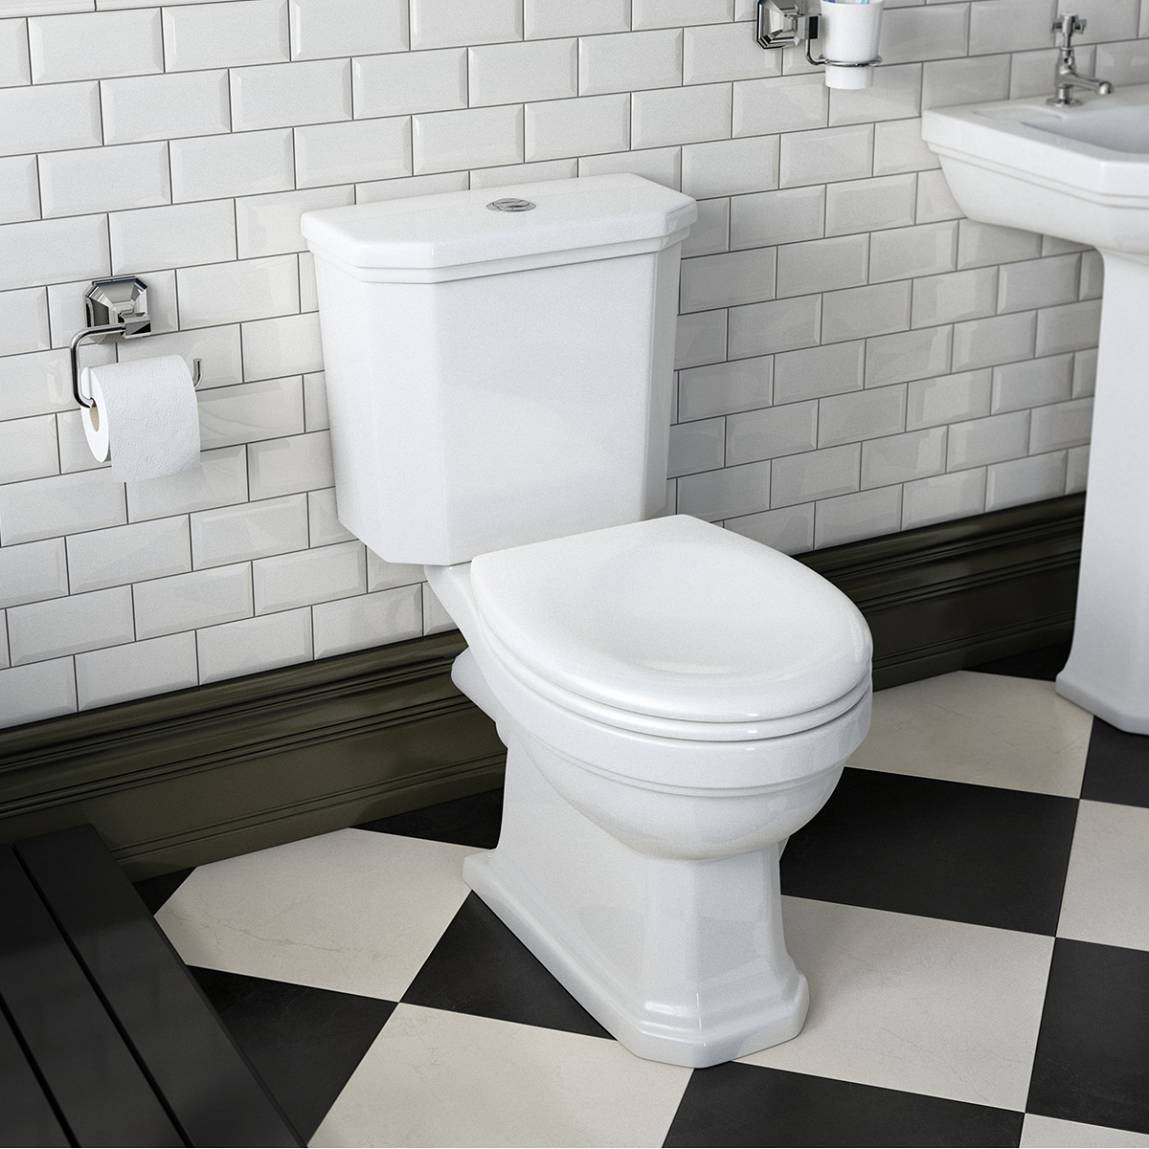 Classic design combined with modern technology make the Regency Close Coupled Toilet an ideal choice.